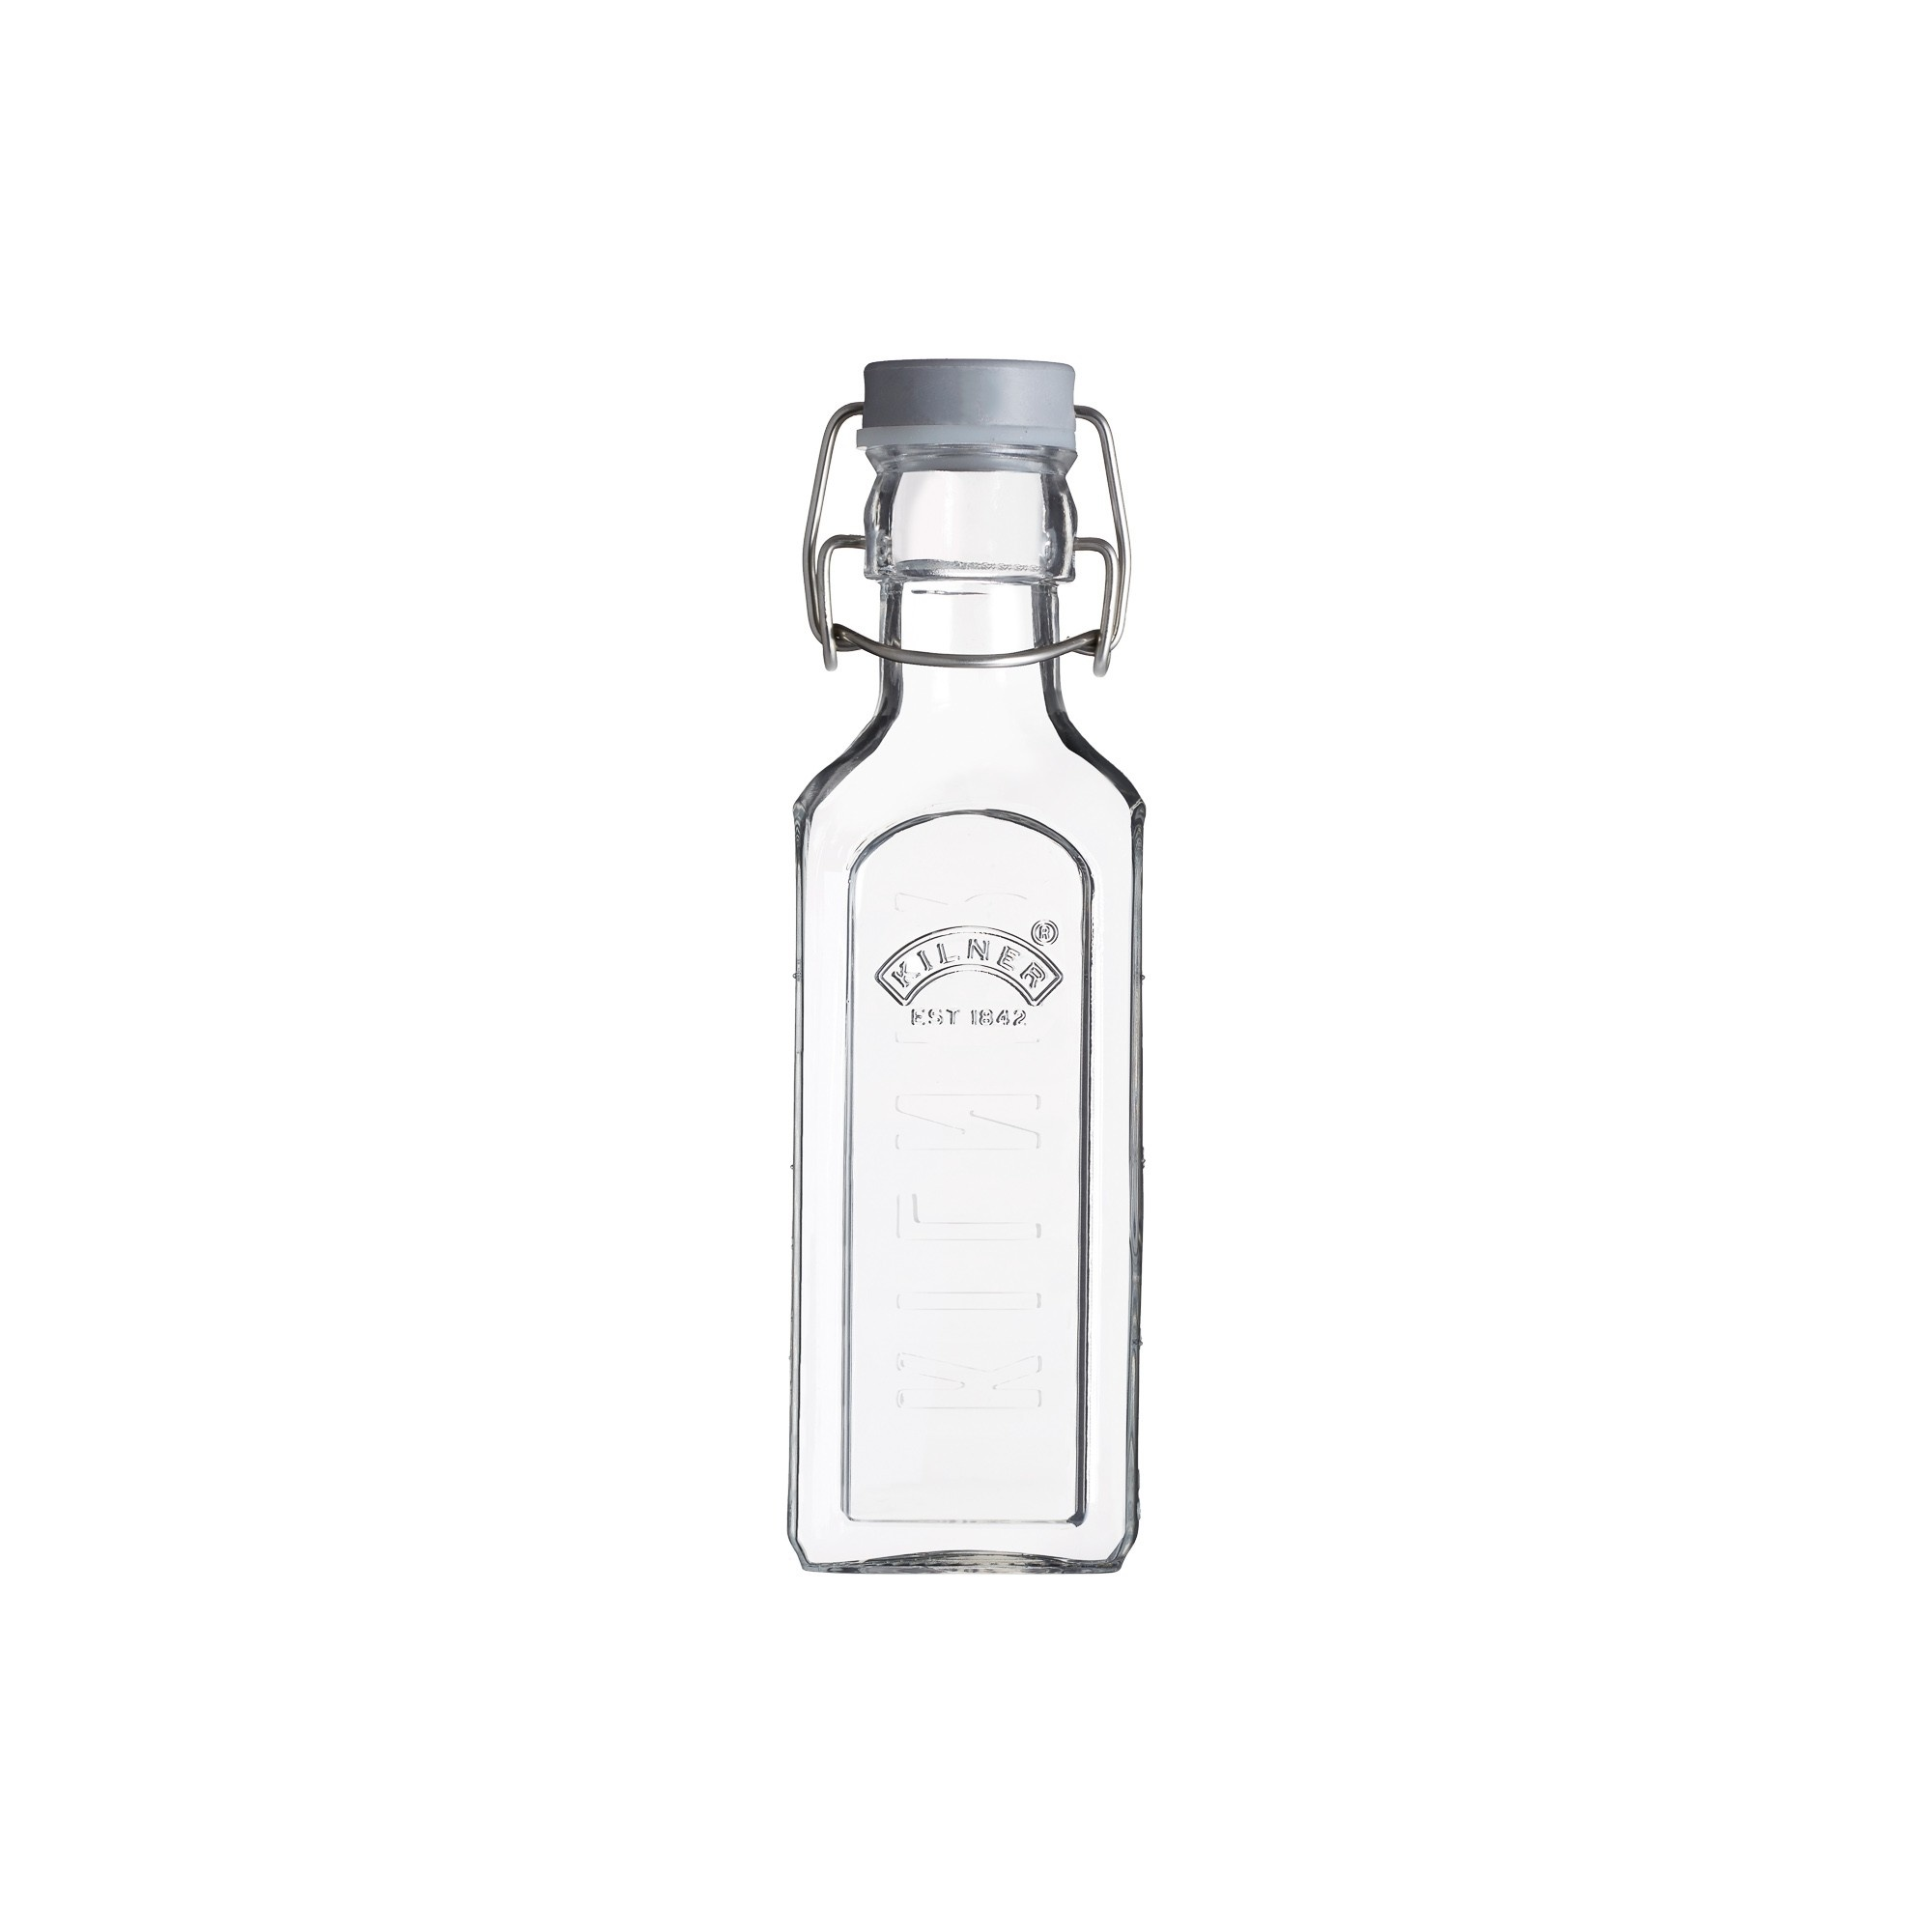 Kilner Clip top bottle - 10 oz.